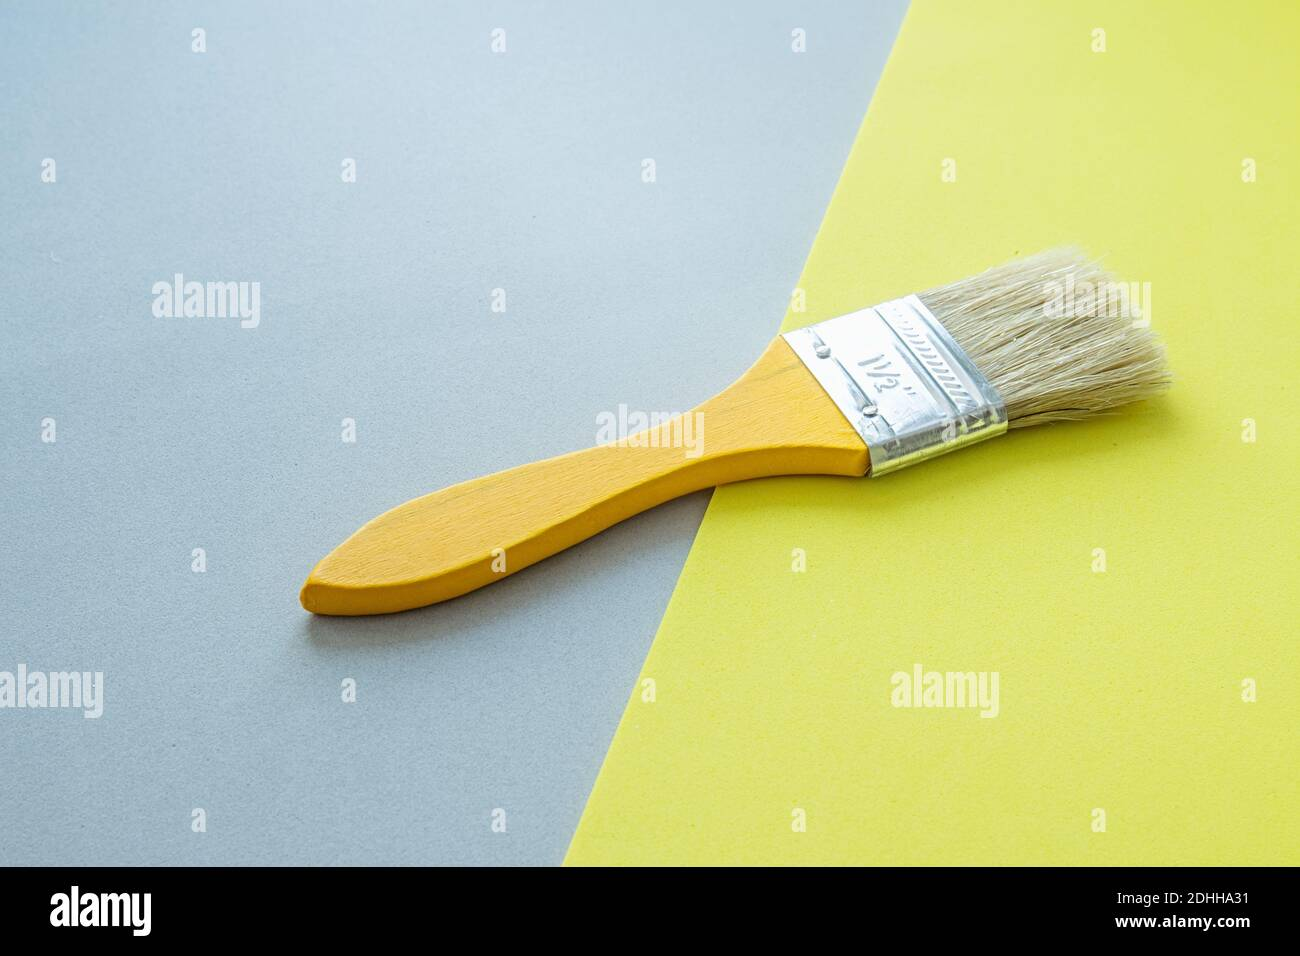 Yellow paint brush on yellow and gray background. Trending color of the year. Home remodeling and renovation concept. Stock Photo